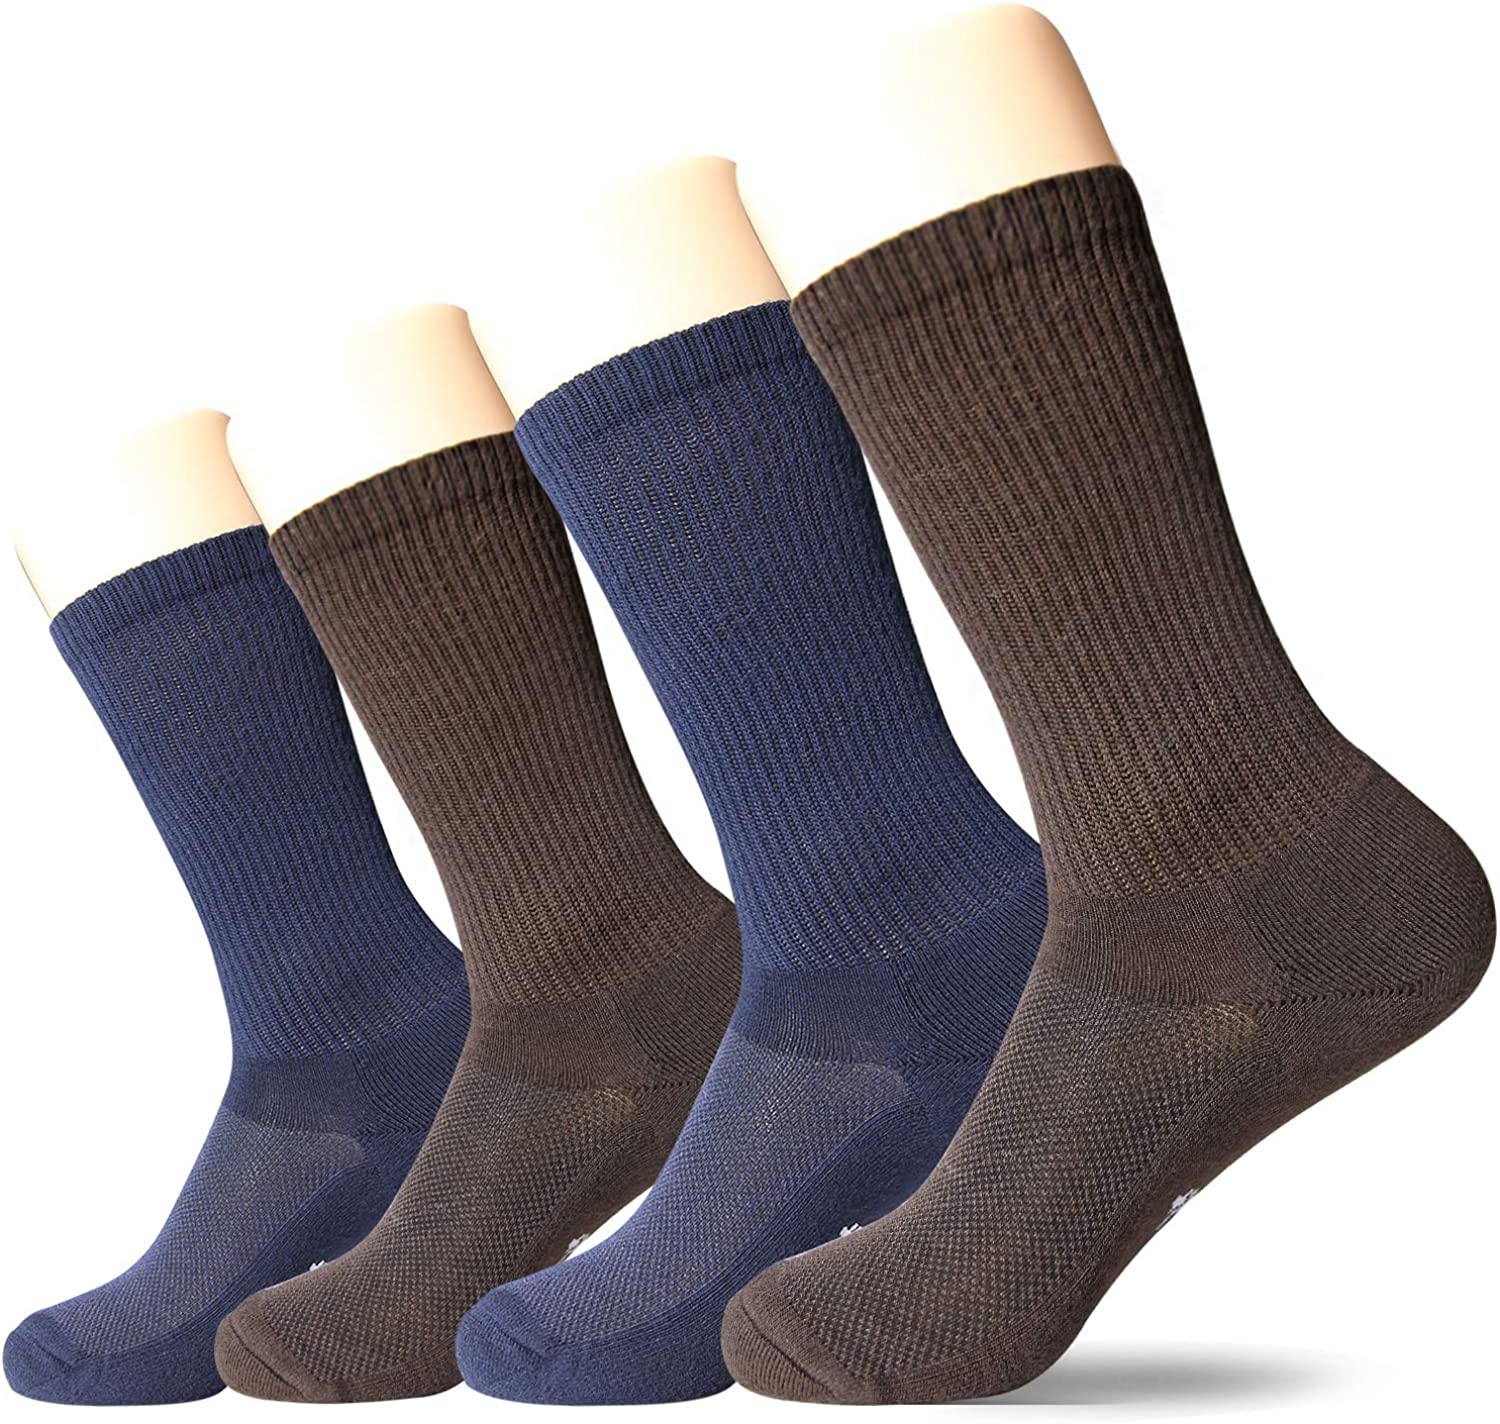 with Cushioned Sole +MD 4 Pack Womens Moiture Wicking Colorful Bamboo Casual Crew Socks